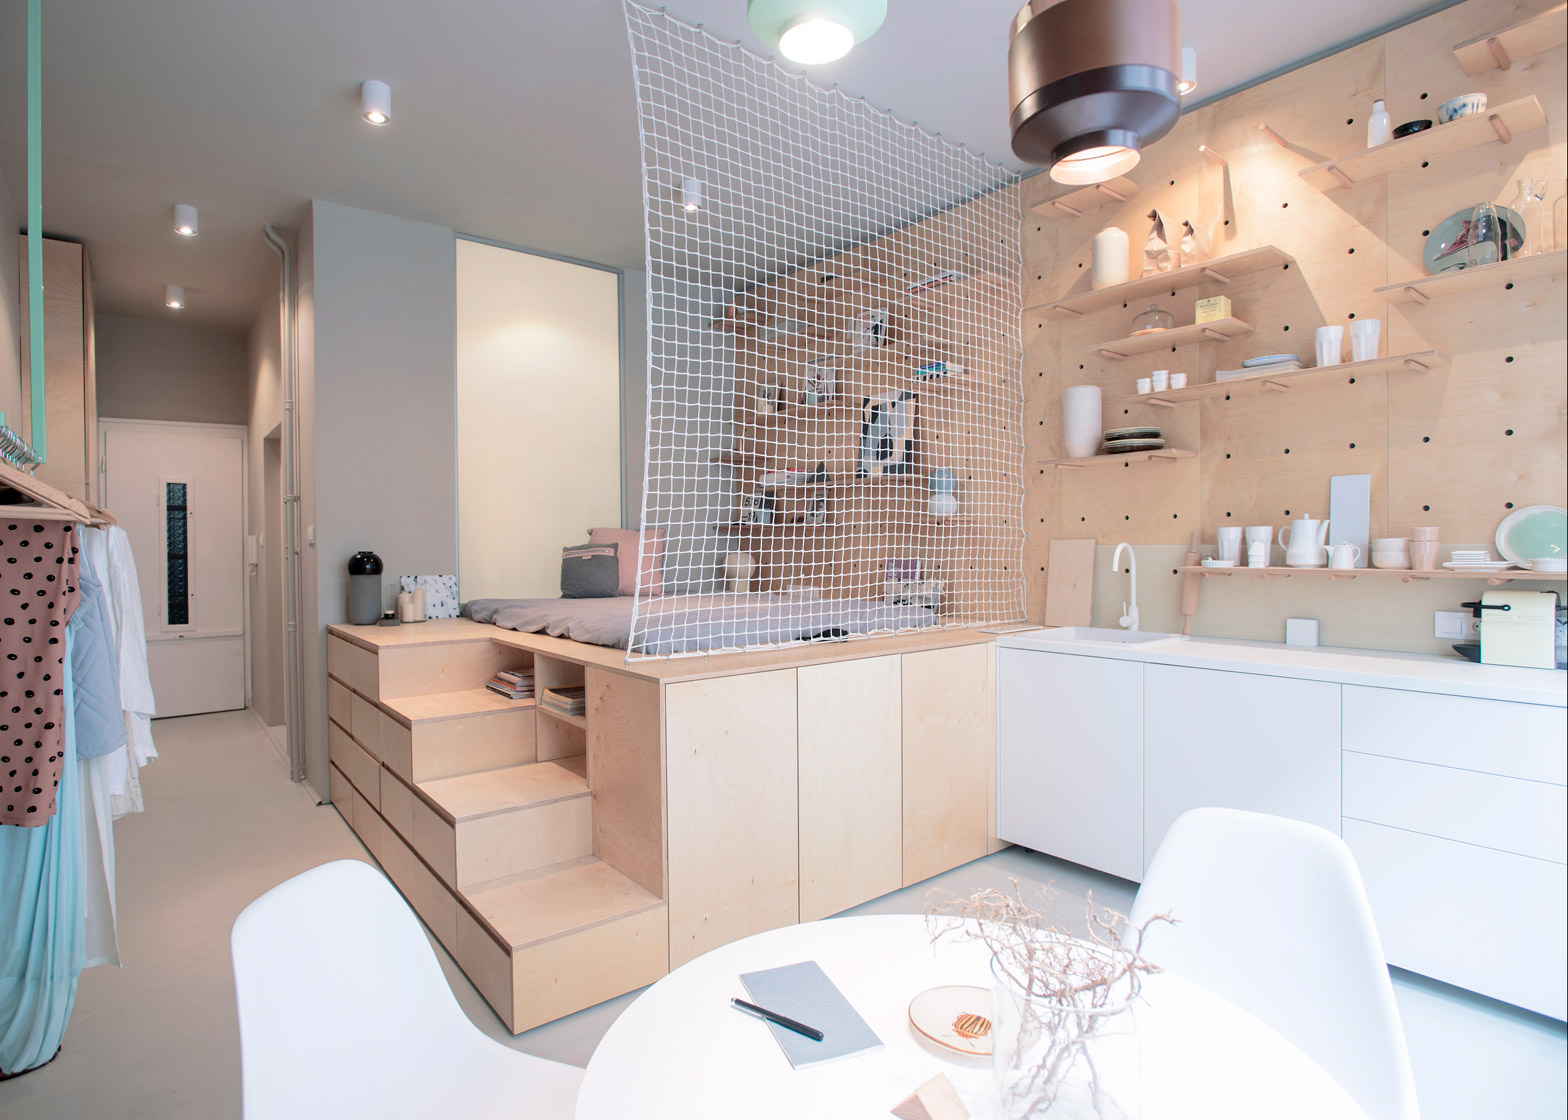 Air-BnP-home_Position-Collective_small-aparment_Budapest_Hungary_plywood_Balazs-Glodi_dezeen_1568_0